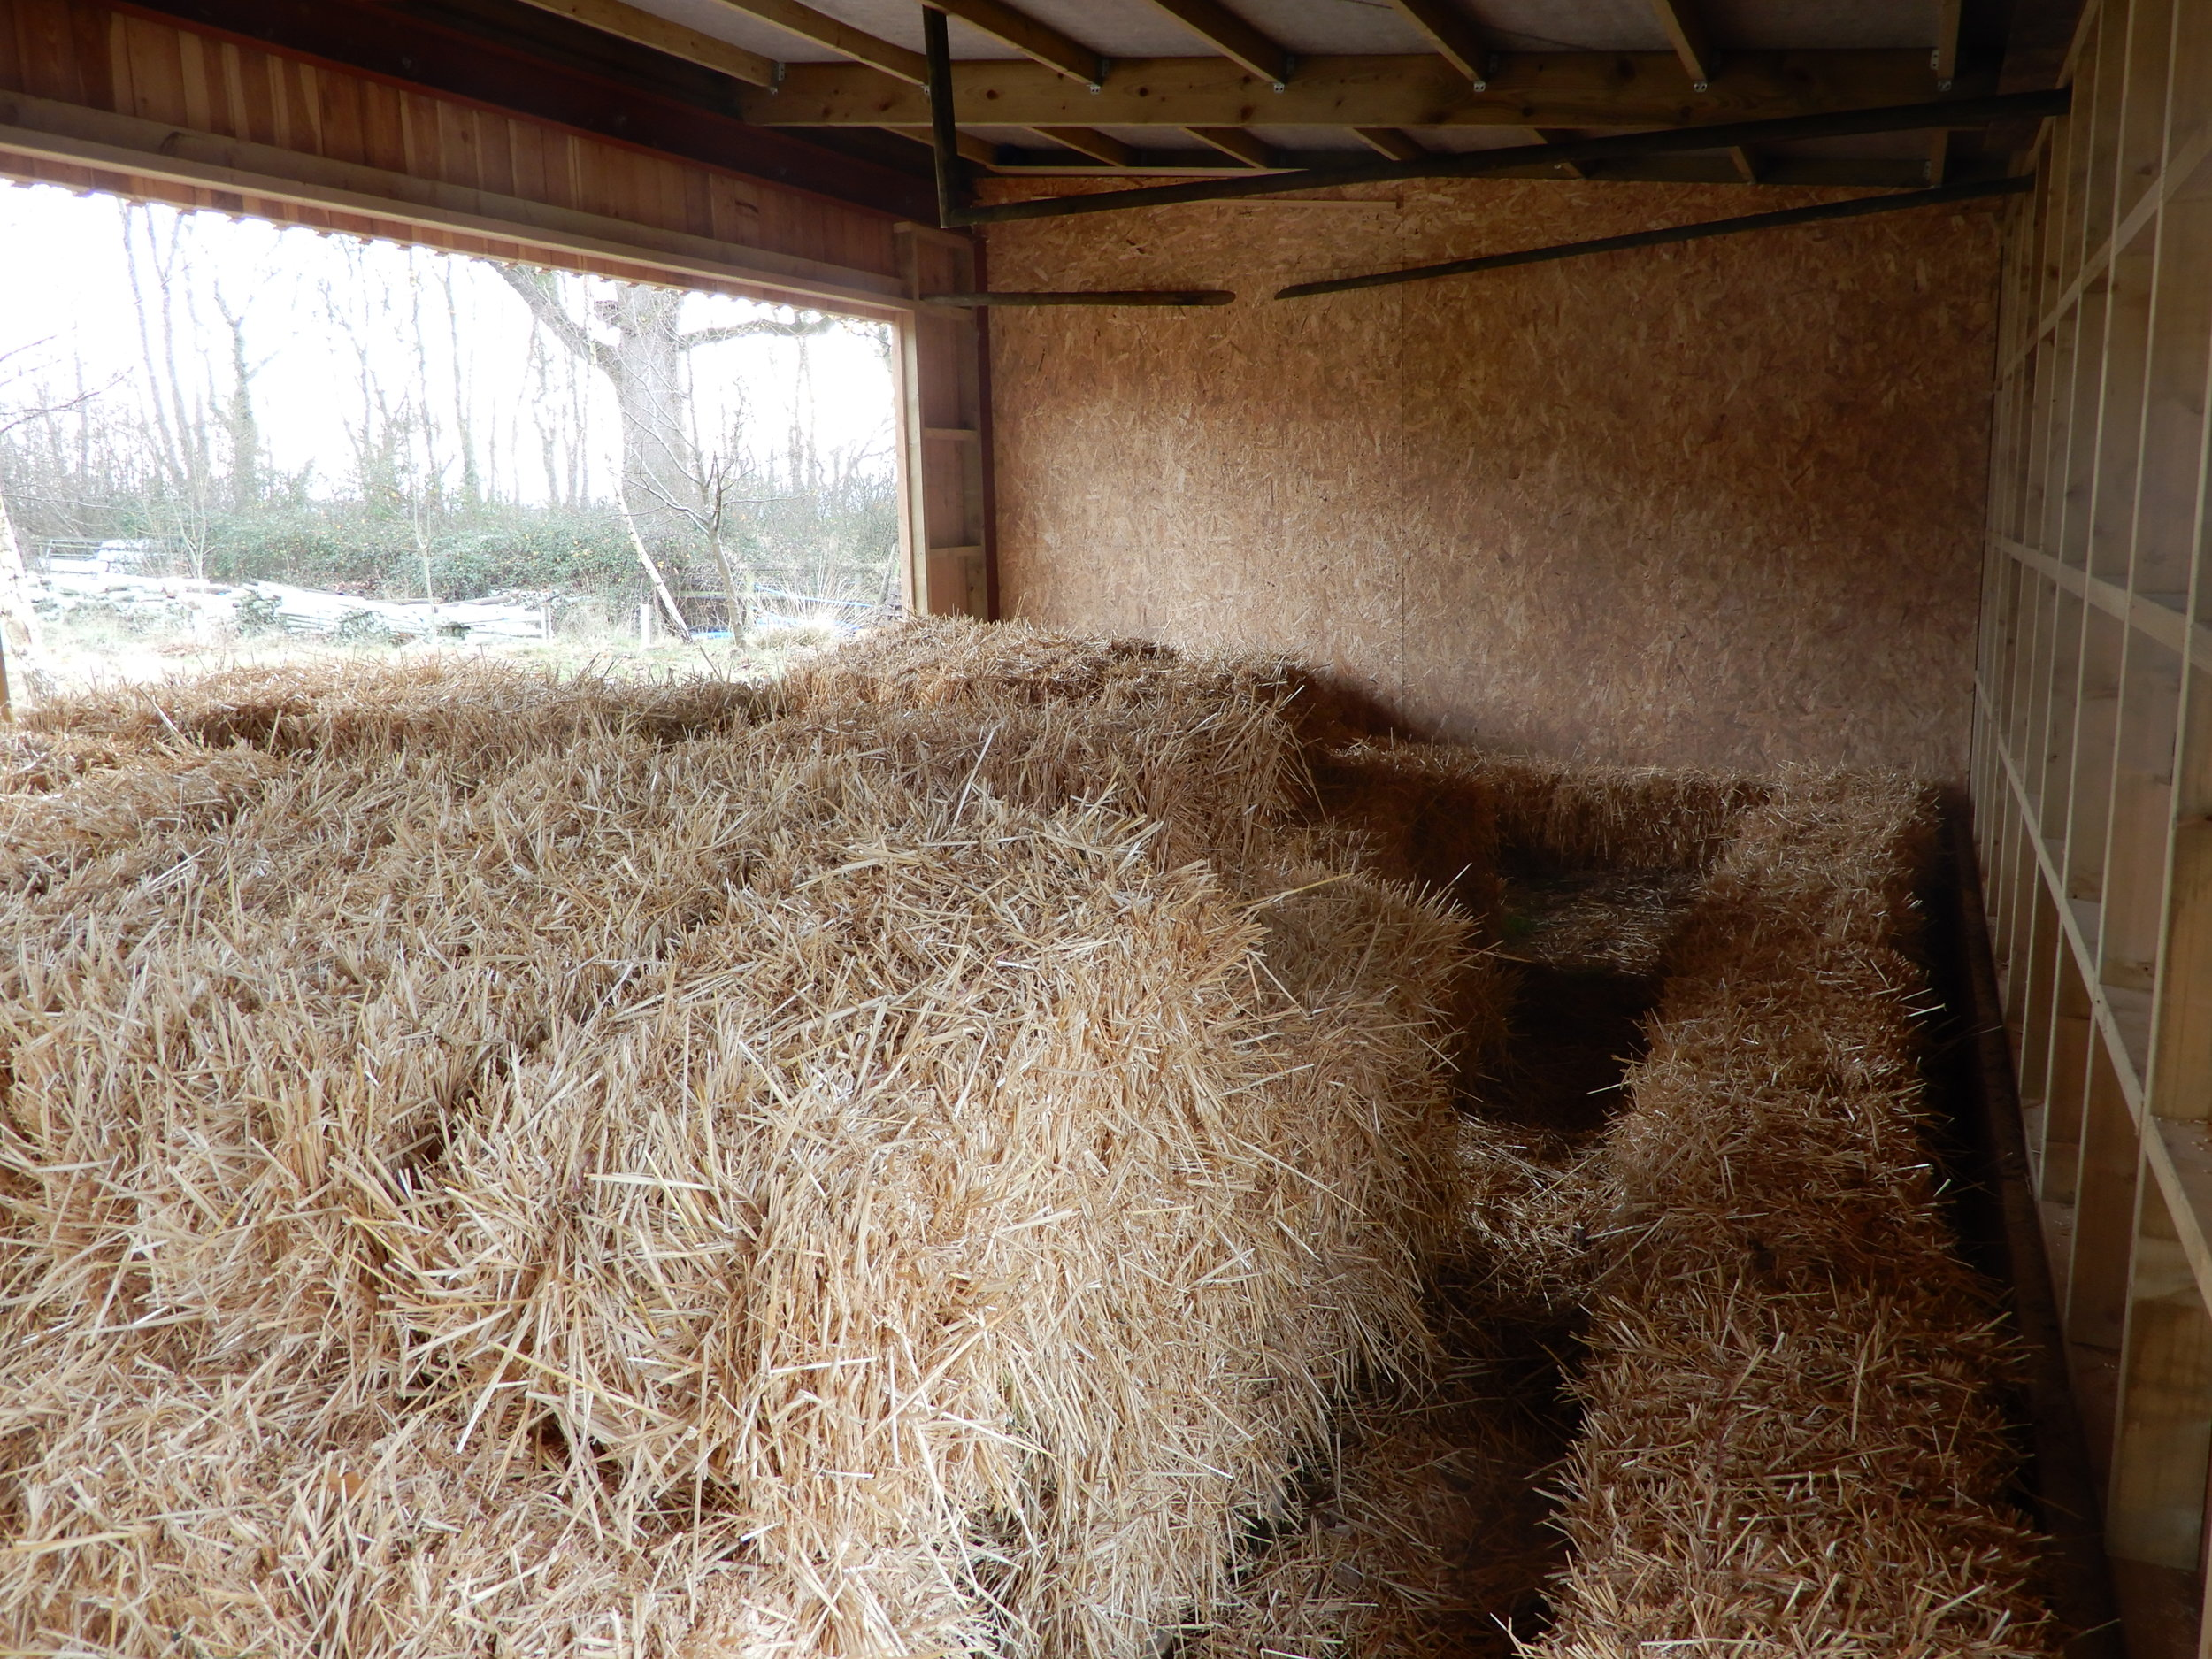 The interior of the barn with straw hay and perches for hunting - grain is spread below the perches to encourage small mammals to inhabit the building.